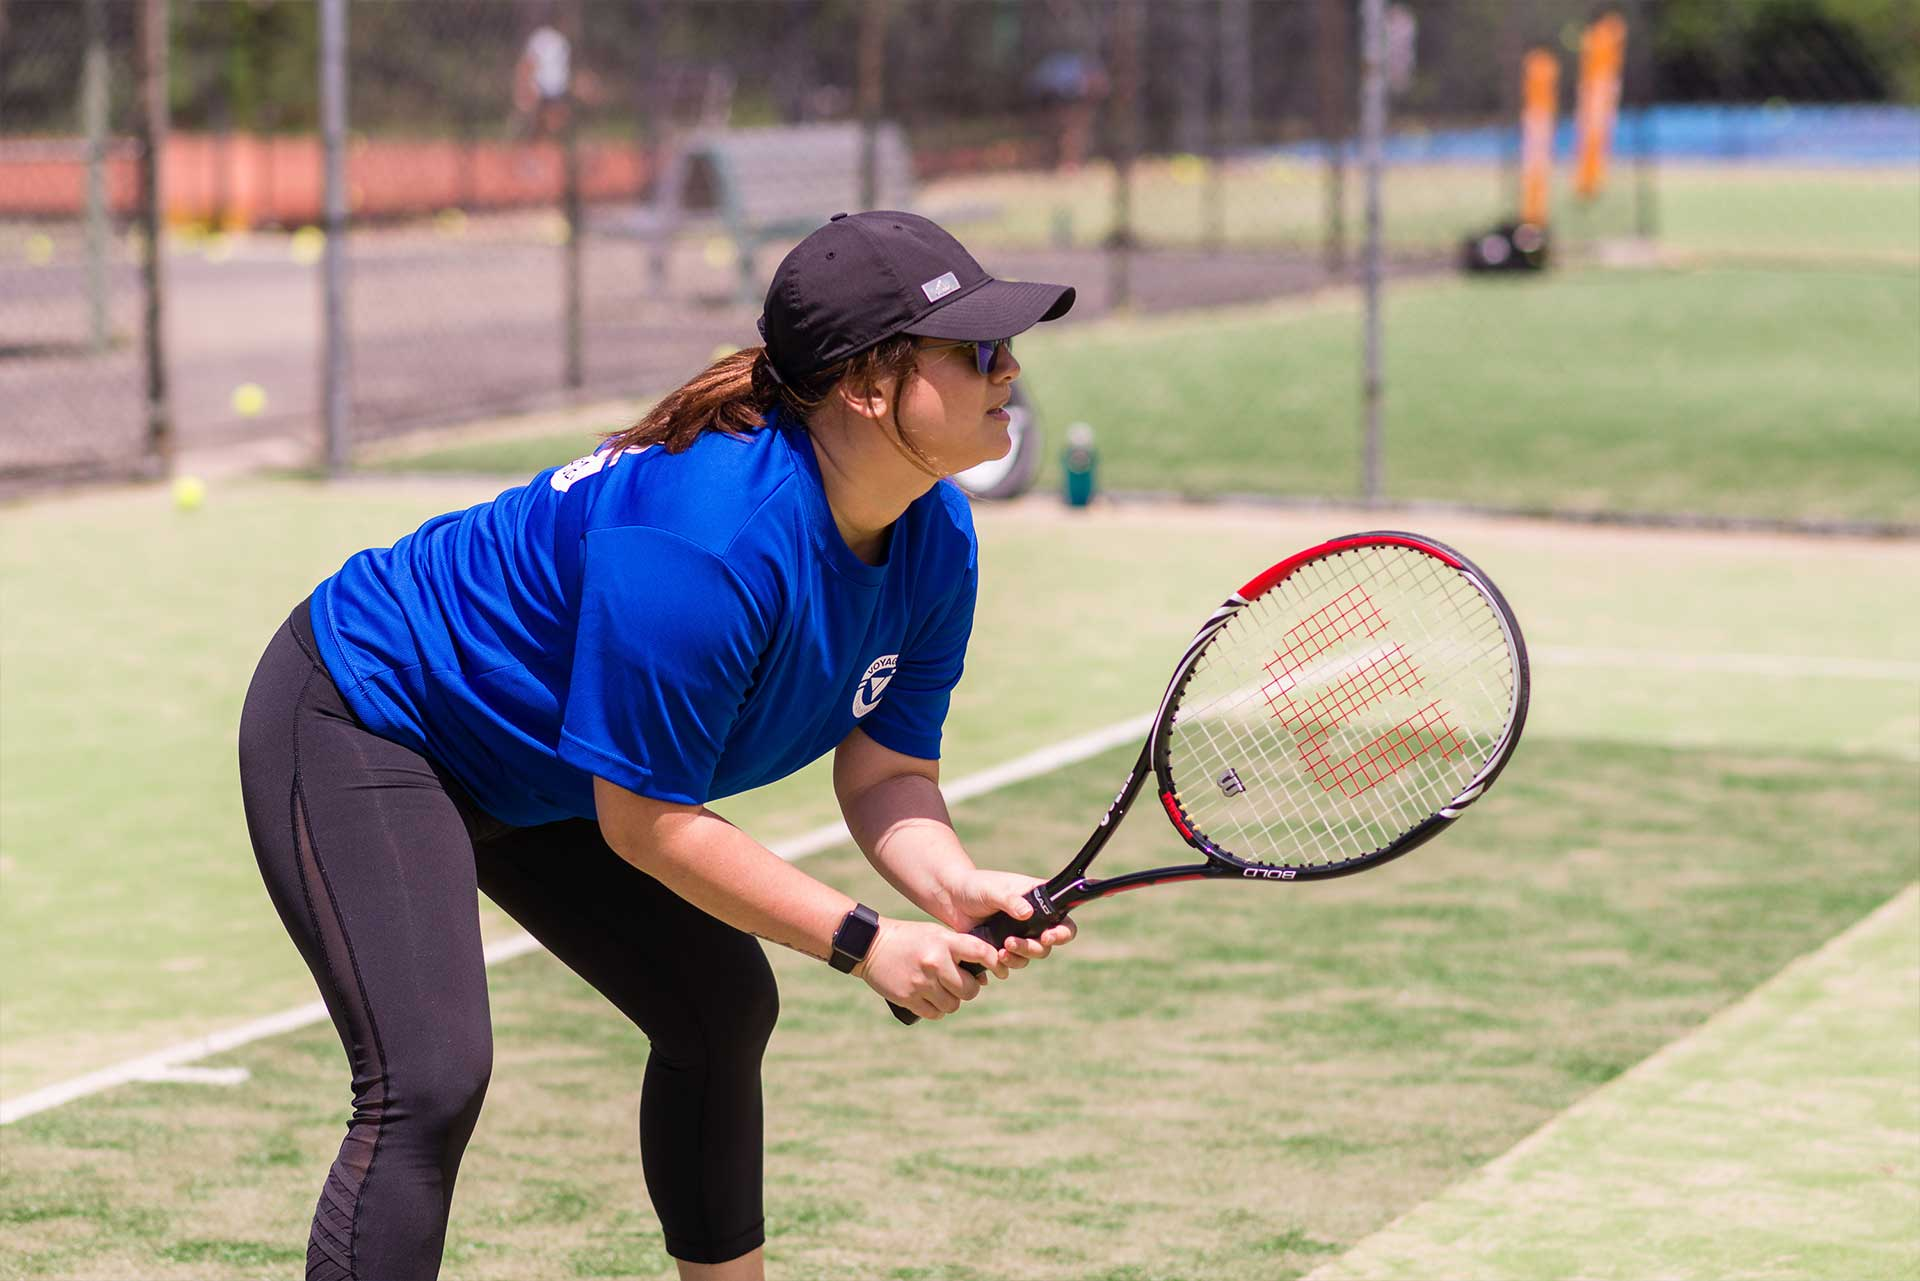 Tennis Competitions Sydney